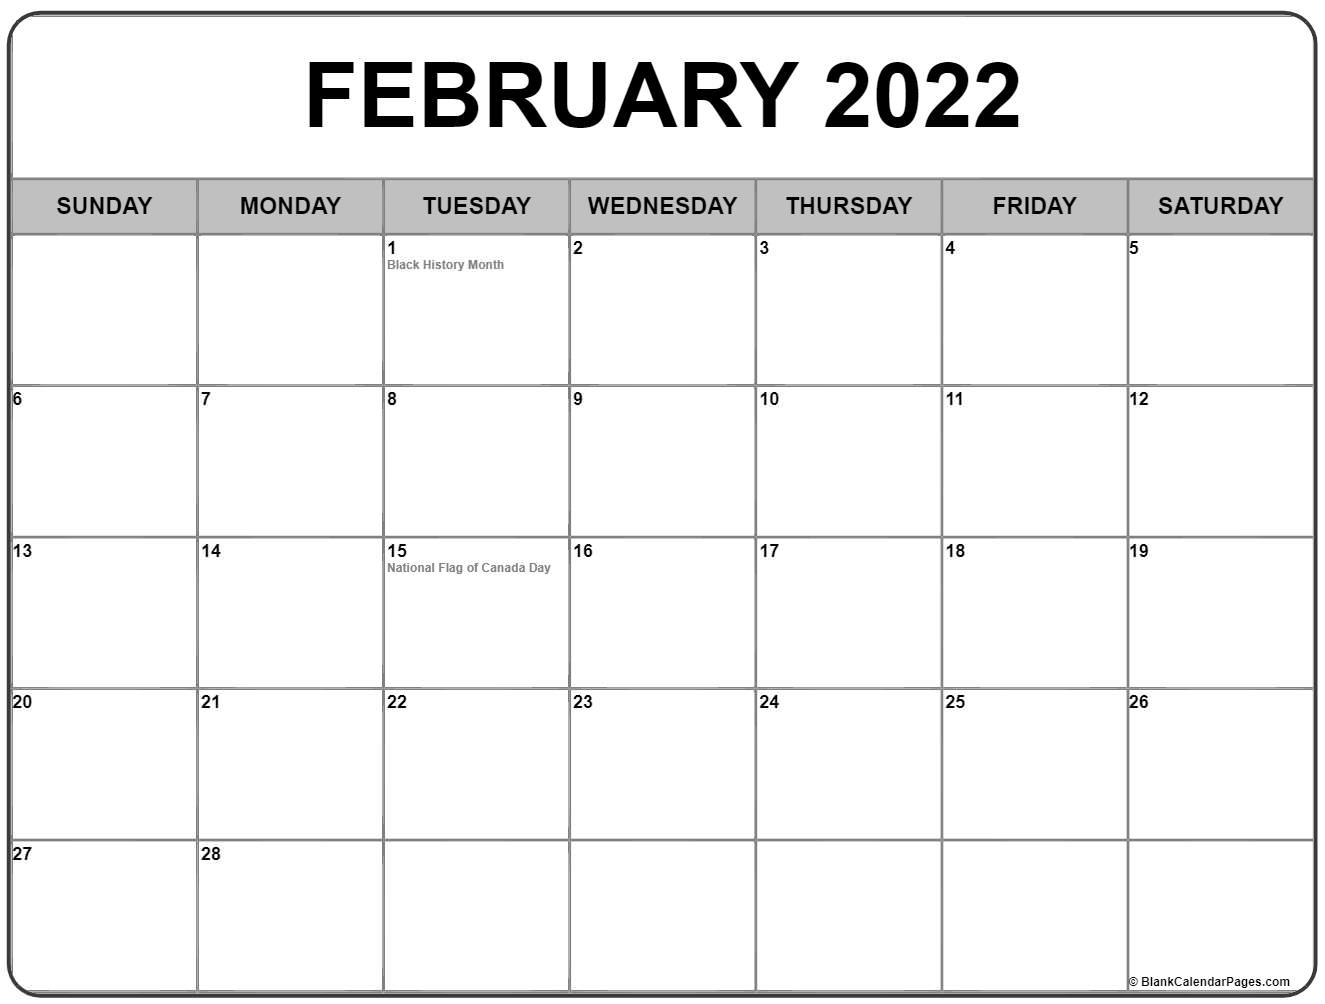 February 2022 Calendar With Holidays Within Free Printable Calendar For February 2022